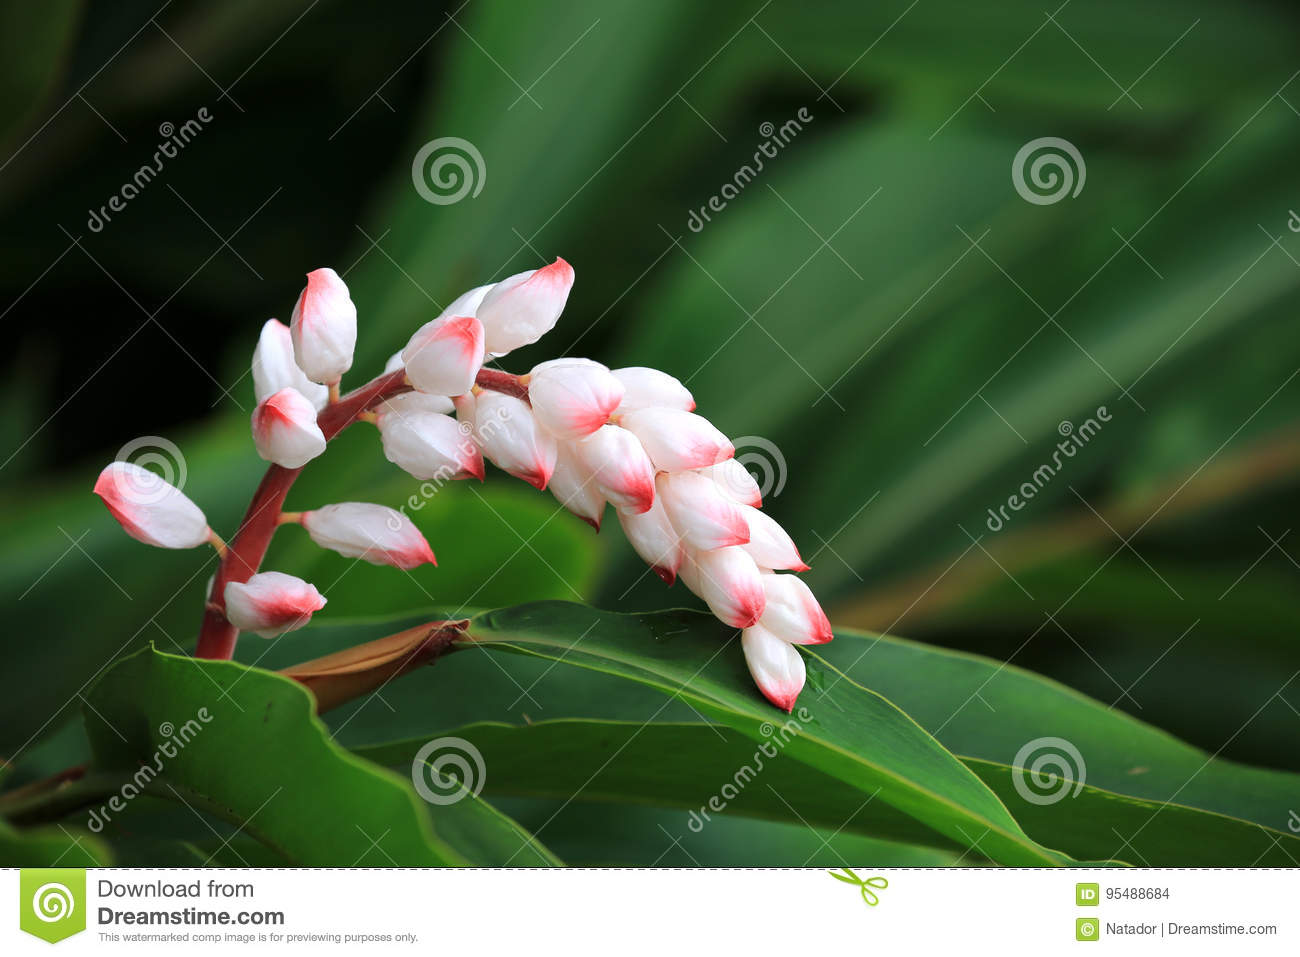 Hawaiian shell ginger flower stock photo image of hawaiian download hawaiian shell ginger flower stock photo image of hawaiian flowers 95488684 izmirmasajfo